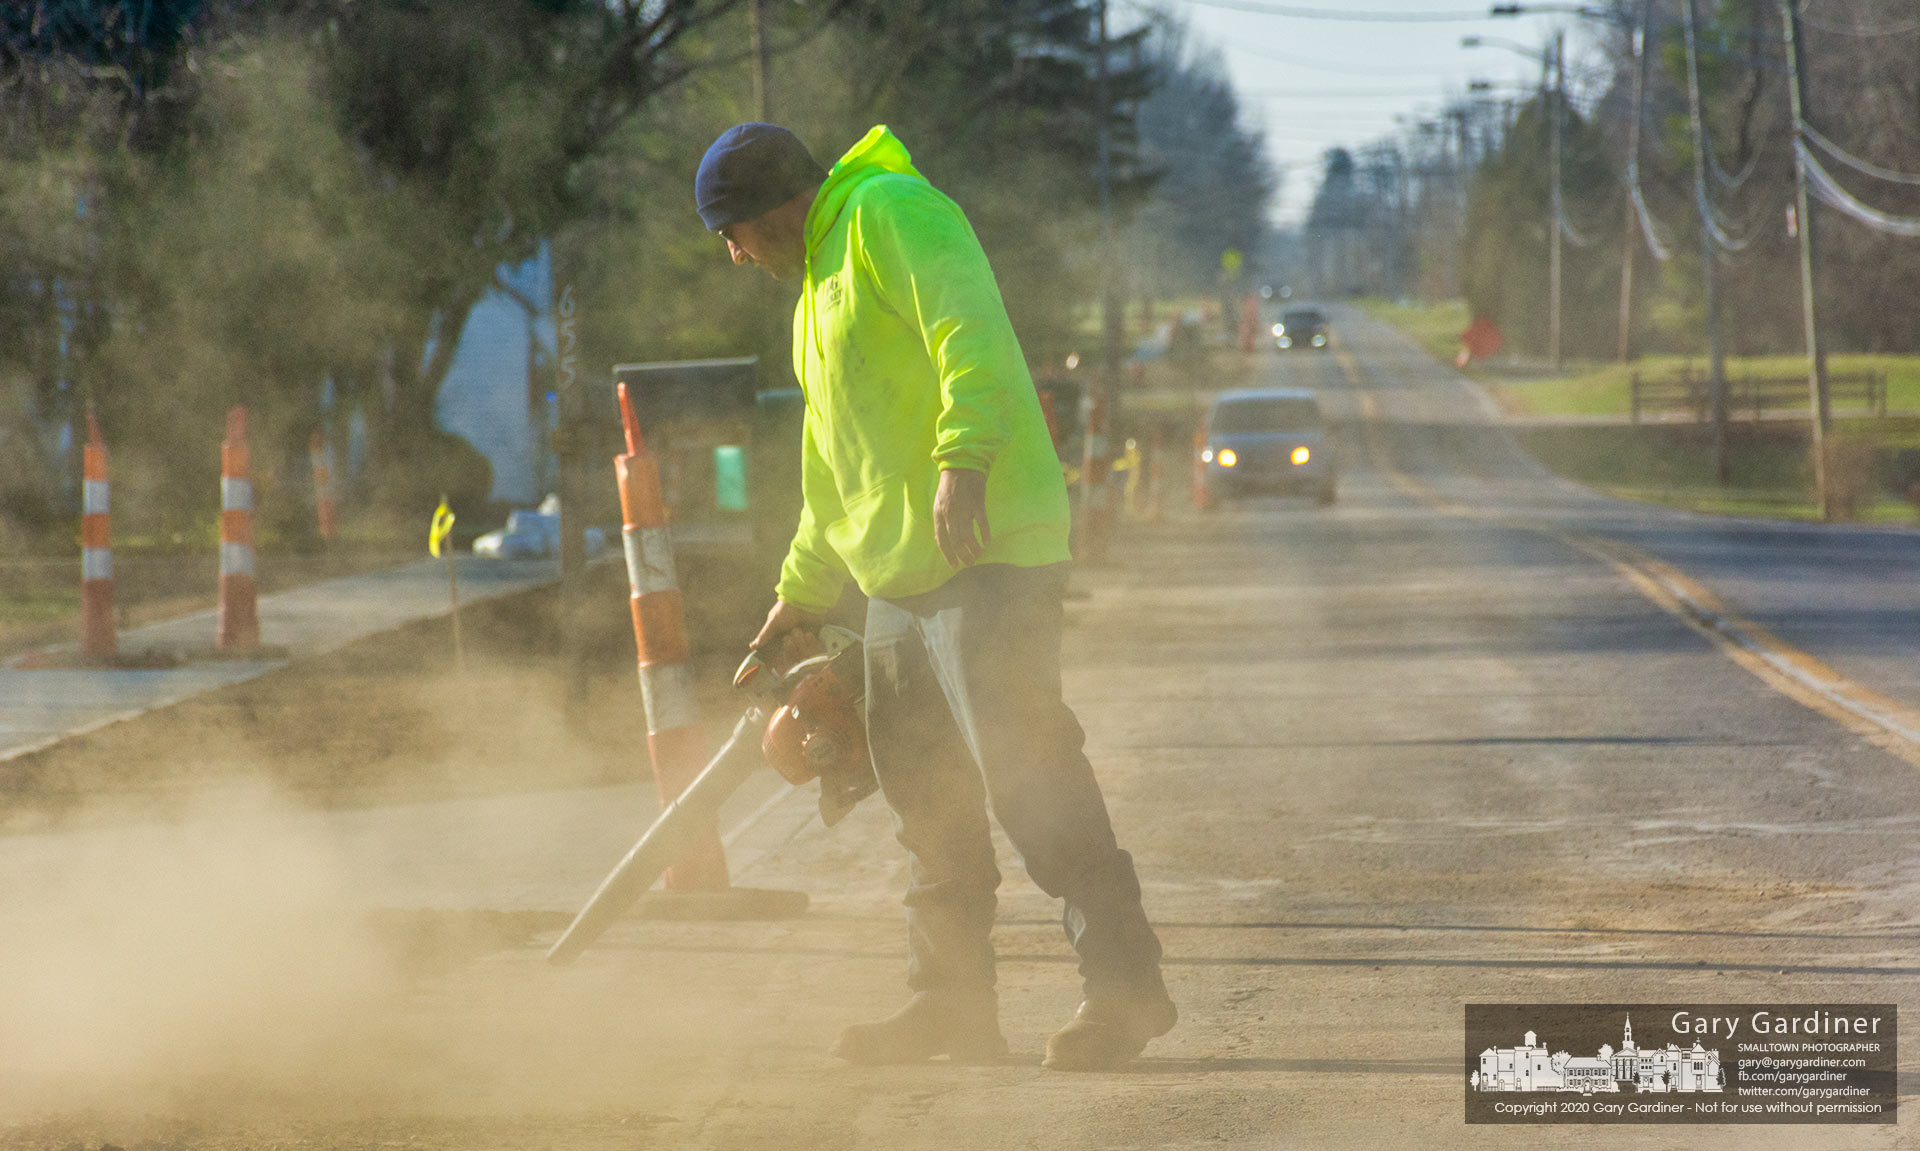 A construction worker blows dust and debris from East College Ave. as the crew finished the day laying topsoil along the edges of the new sidewalk recently finished on the east-west corridor road. My Final Photo for Dec. 9, 2020.